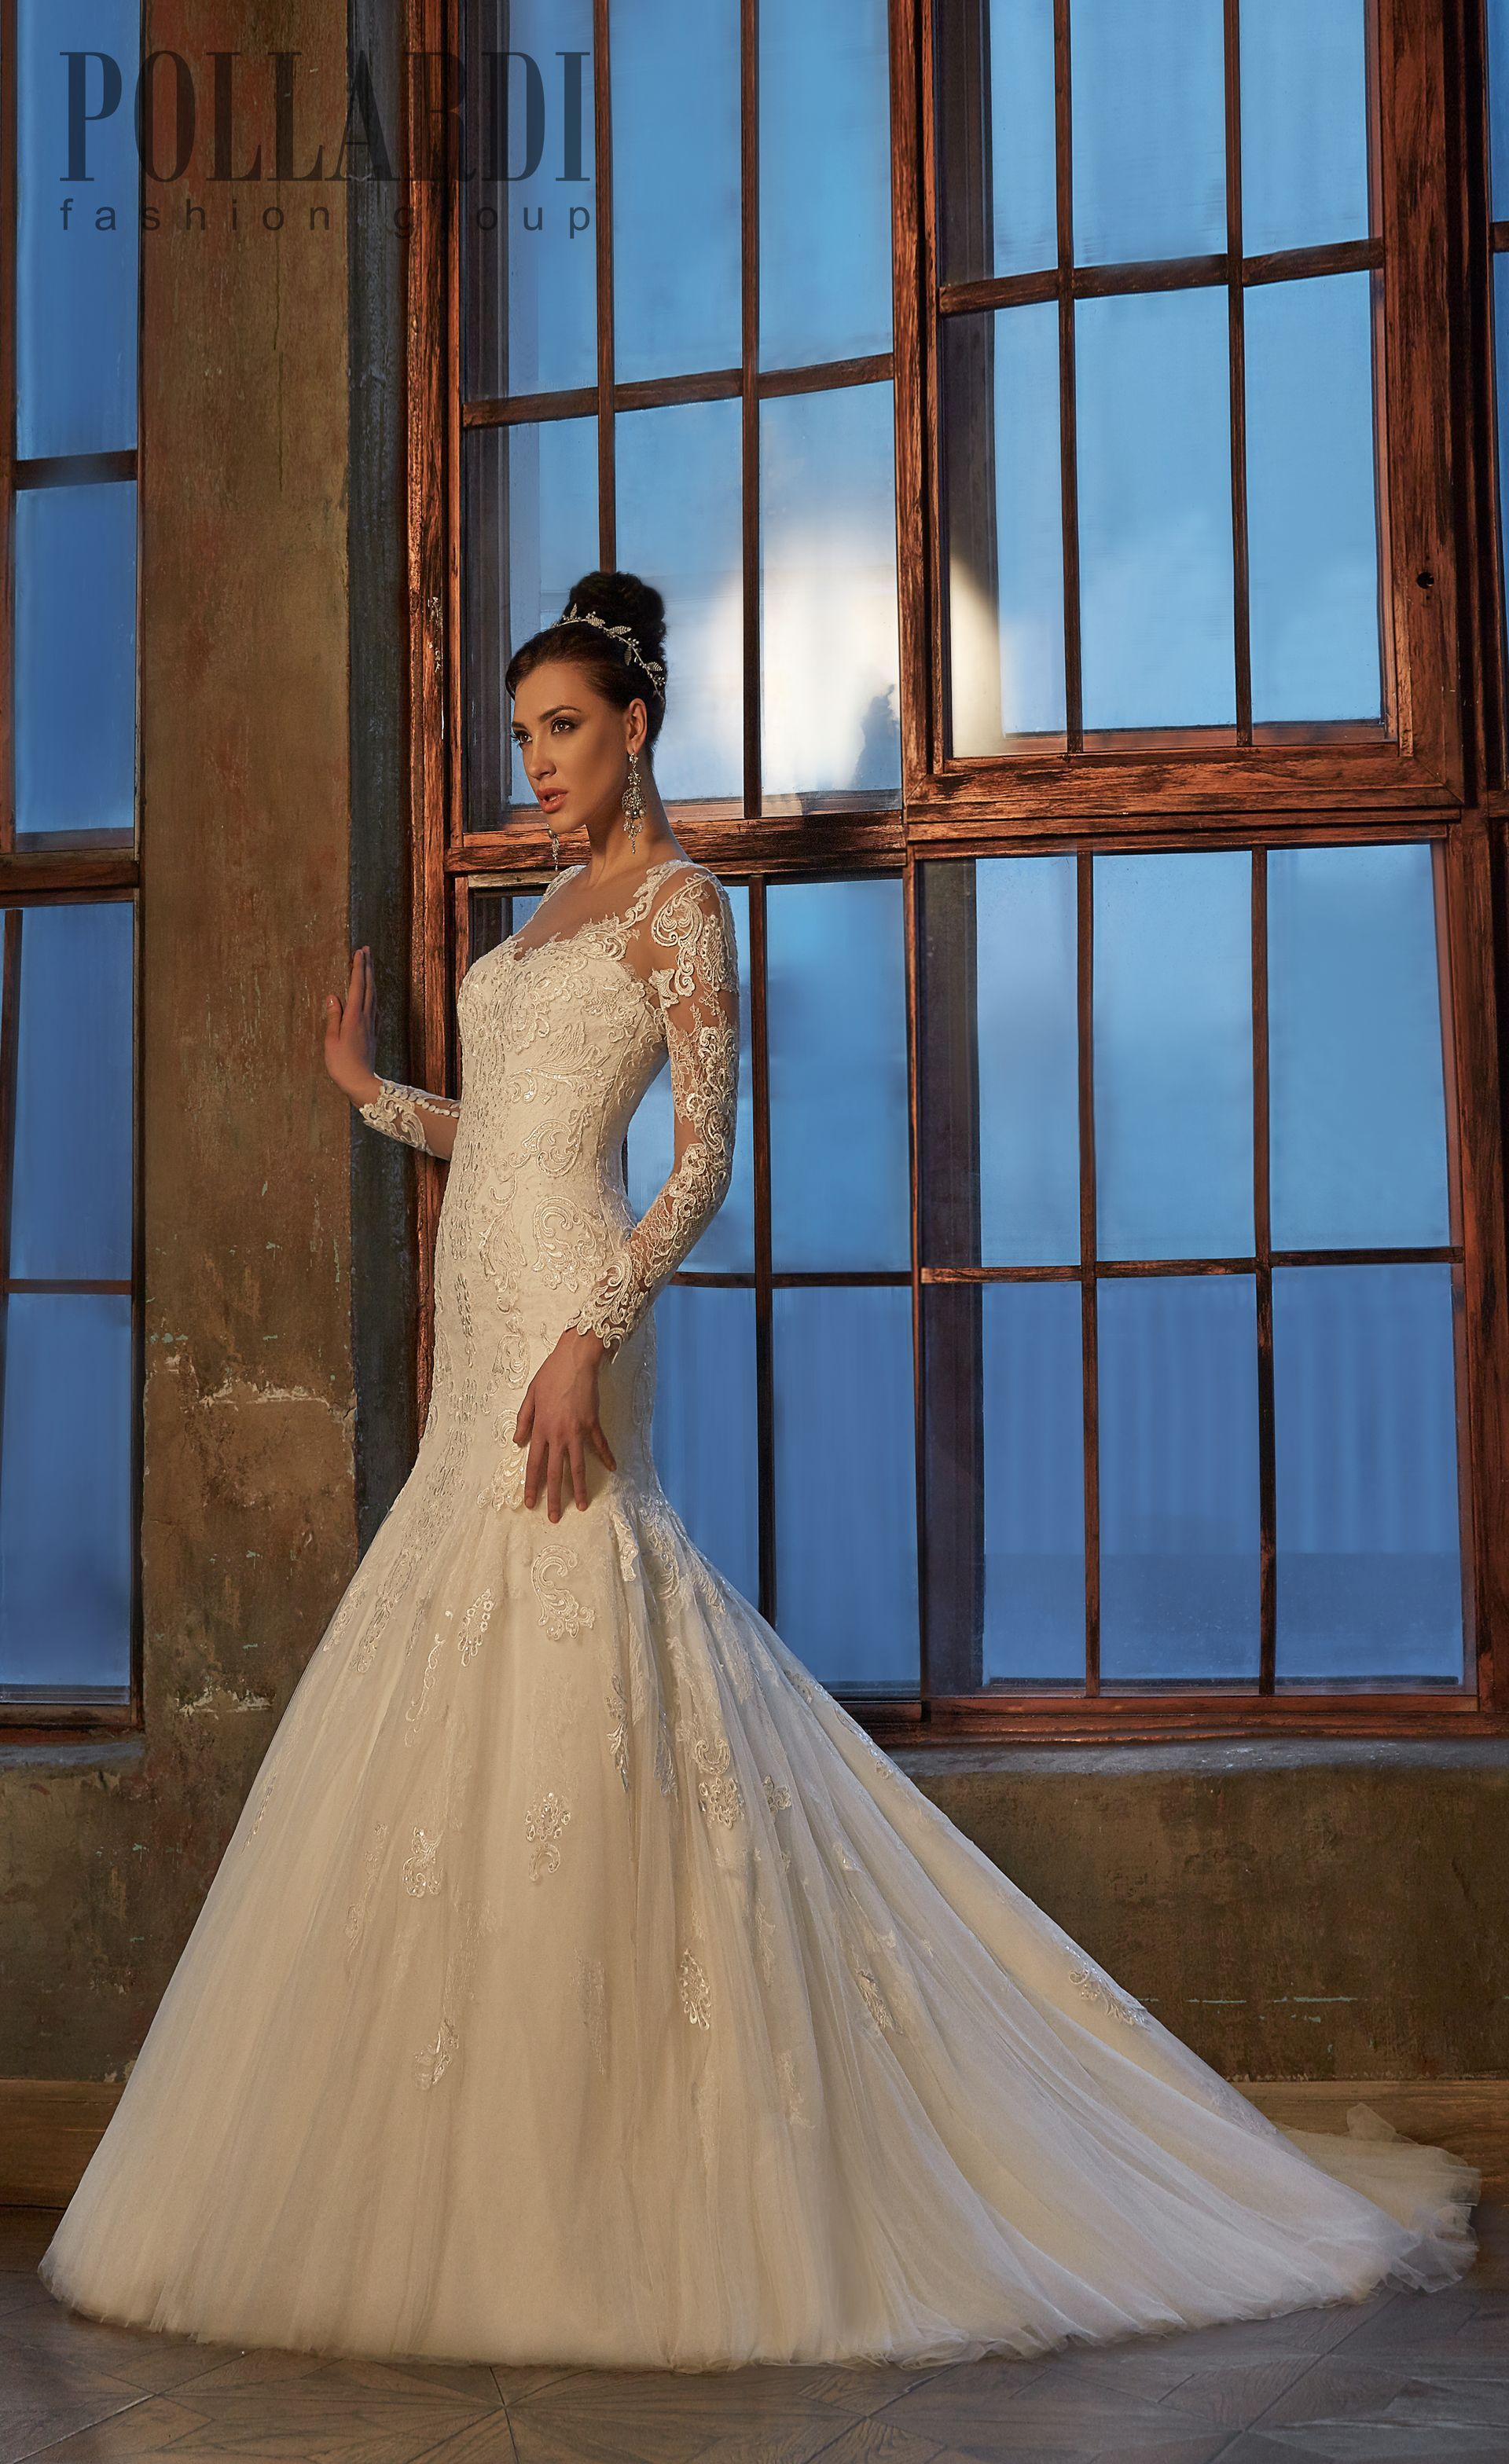 Elite wedding dresses  PL  Deba  Fit for a Bride Elite Bridal Boutique  Pinterest